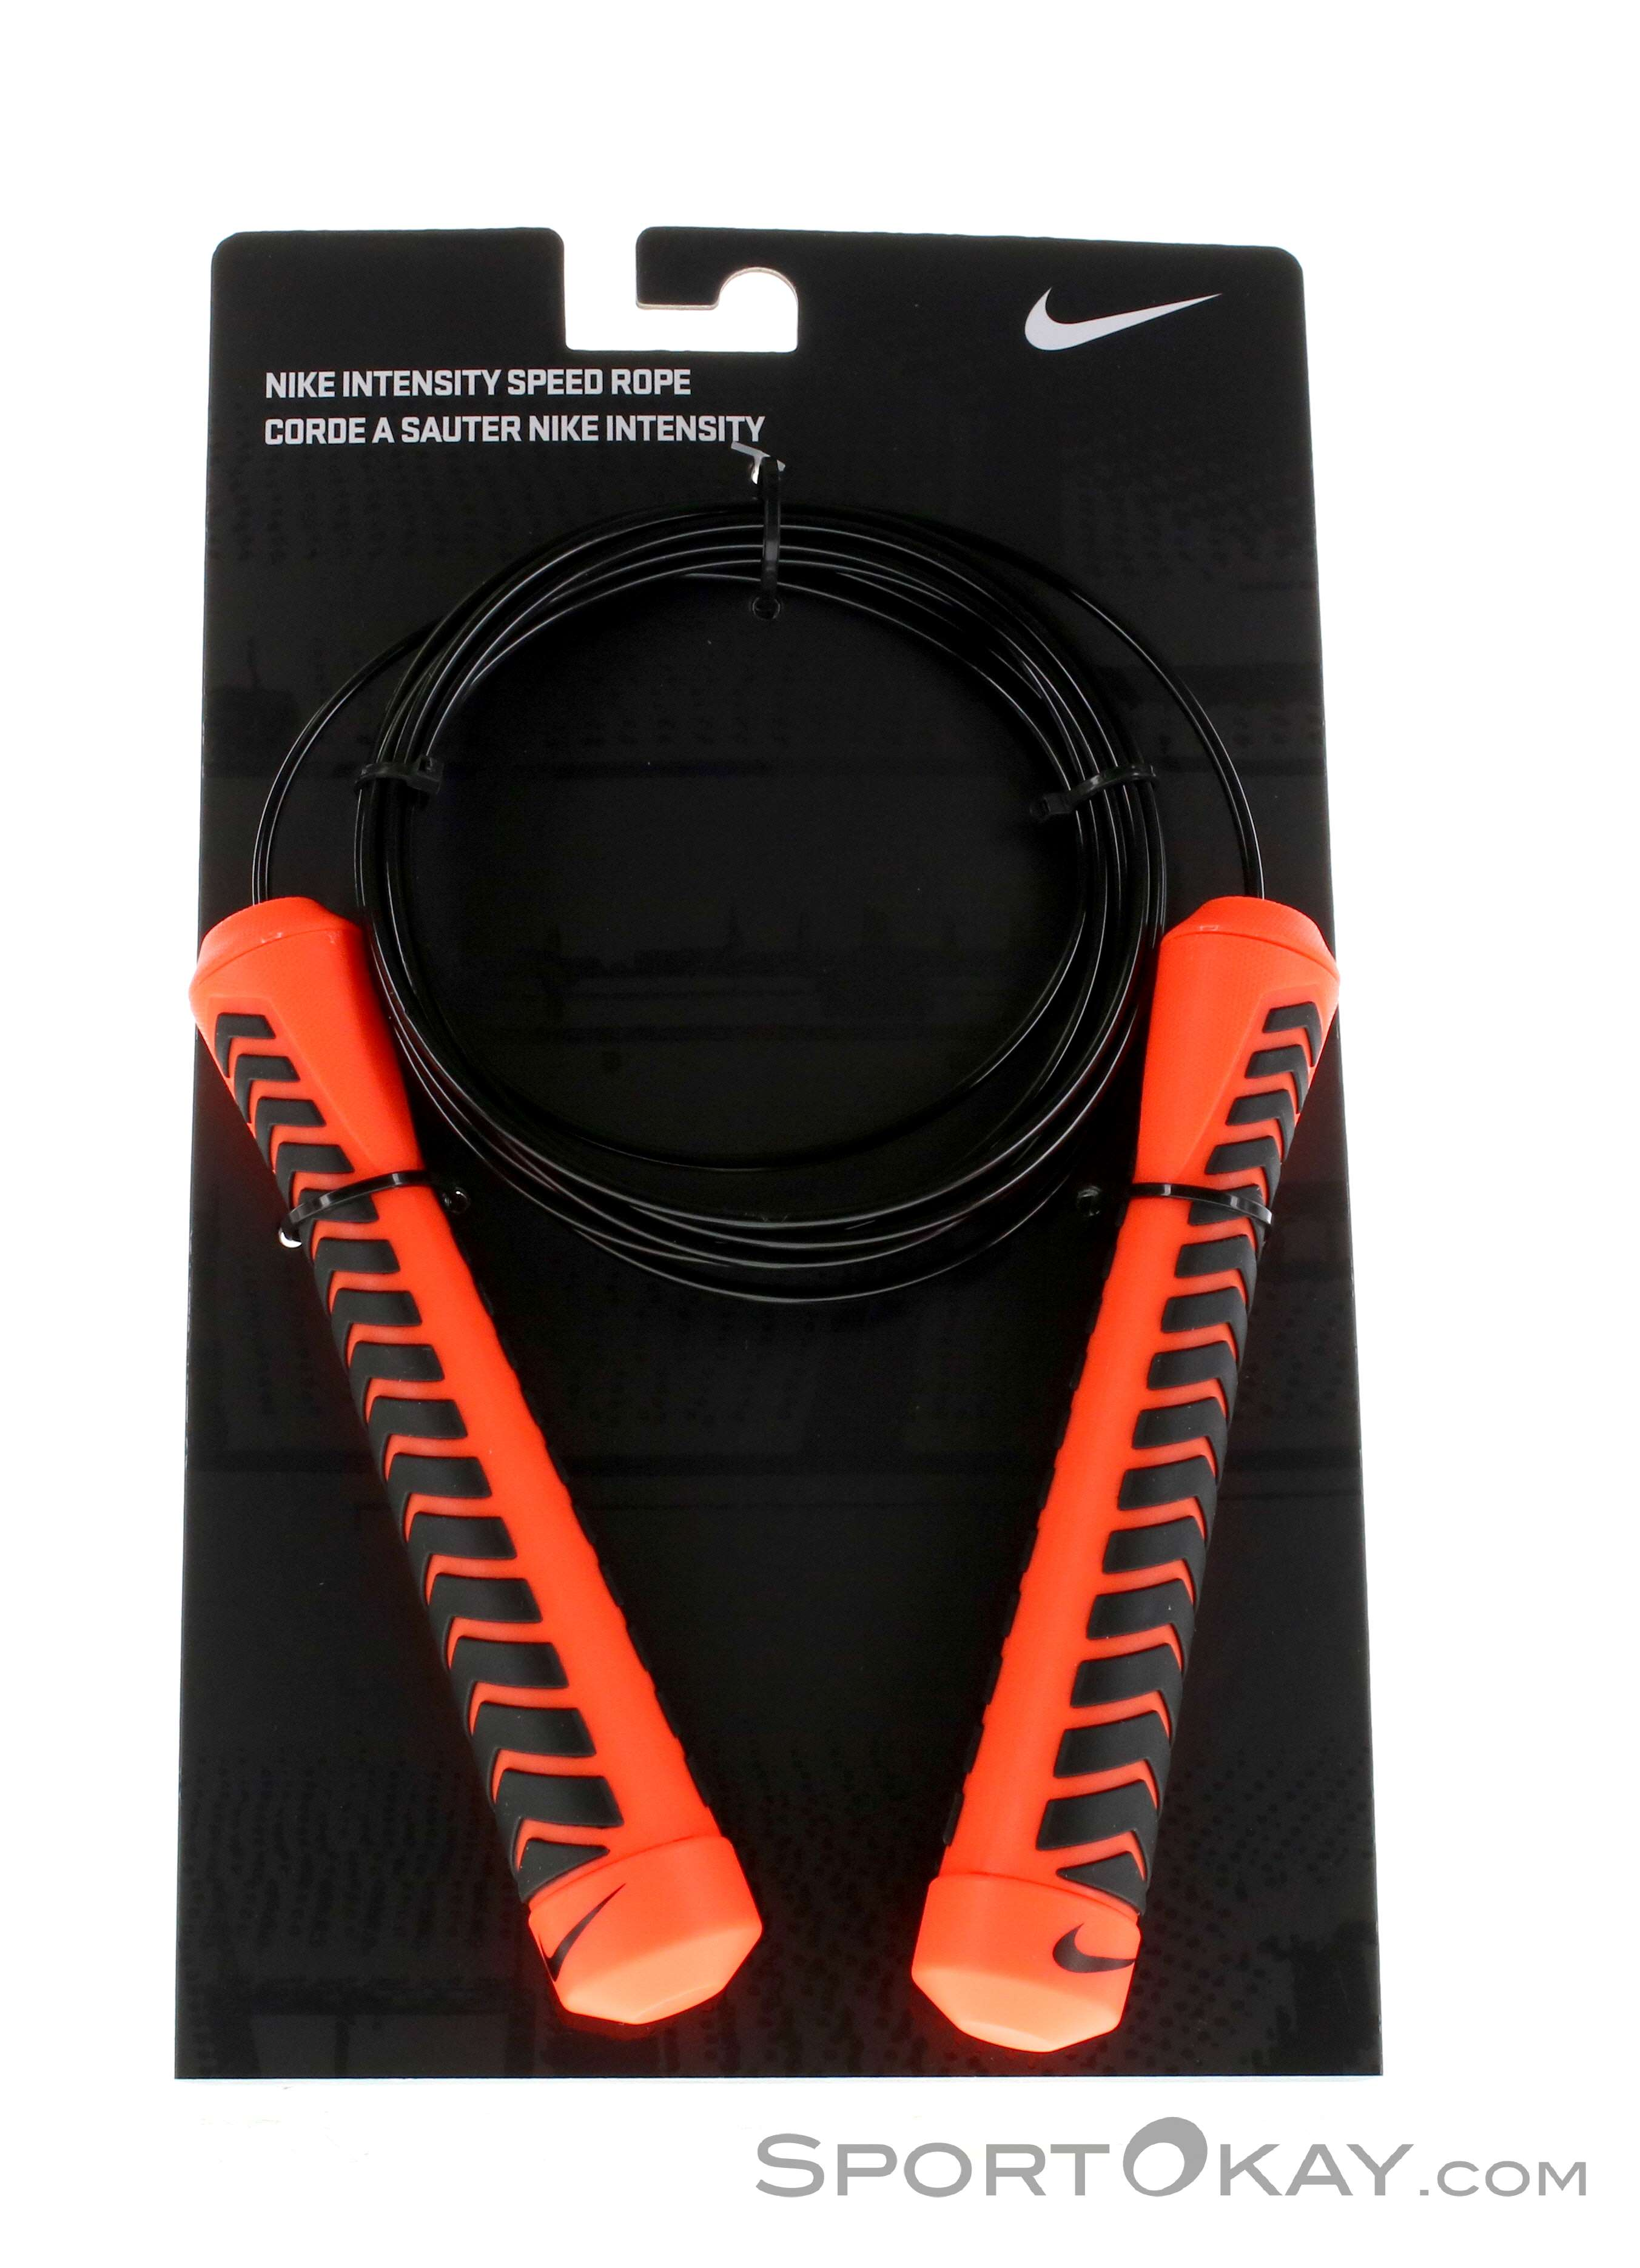 Nike Intensity Speed Rope Skipping Rope - Skipping Roles - Fitness ...